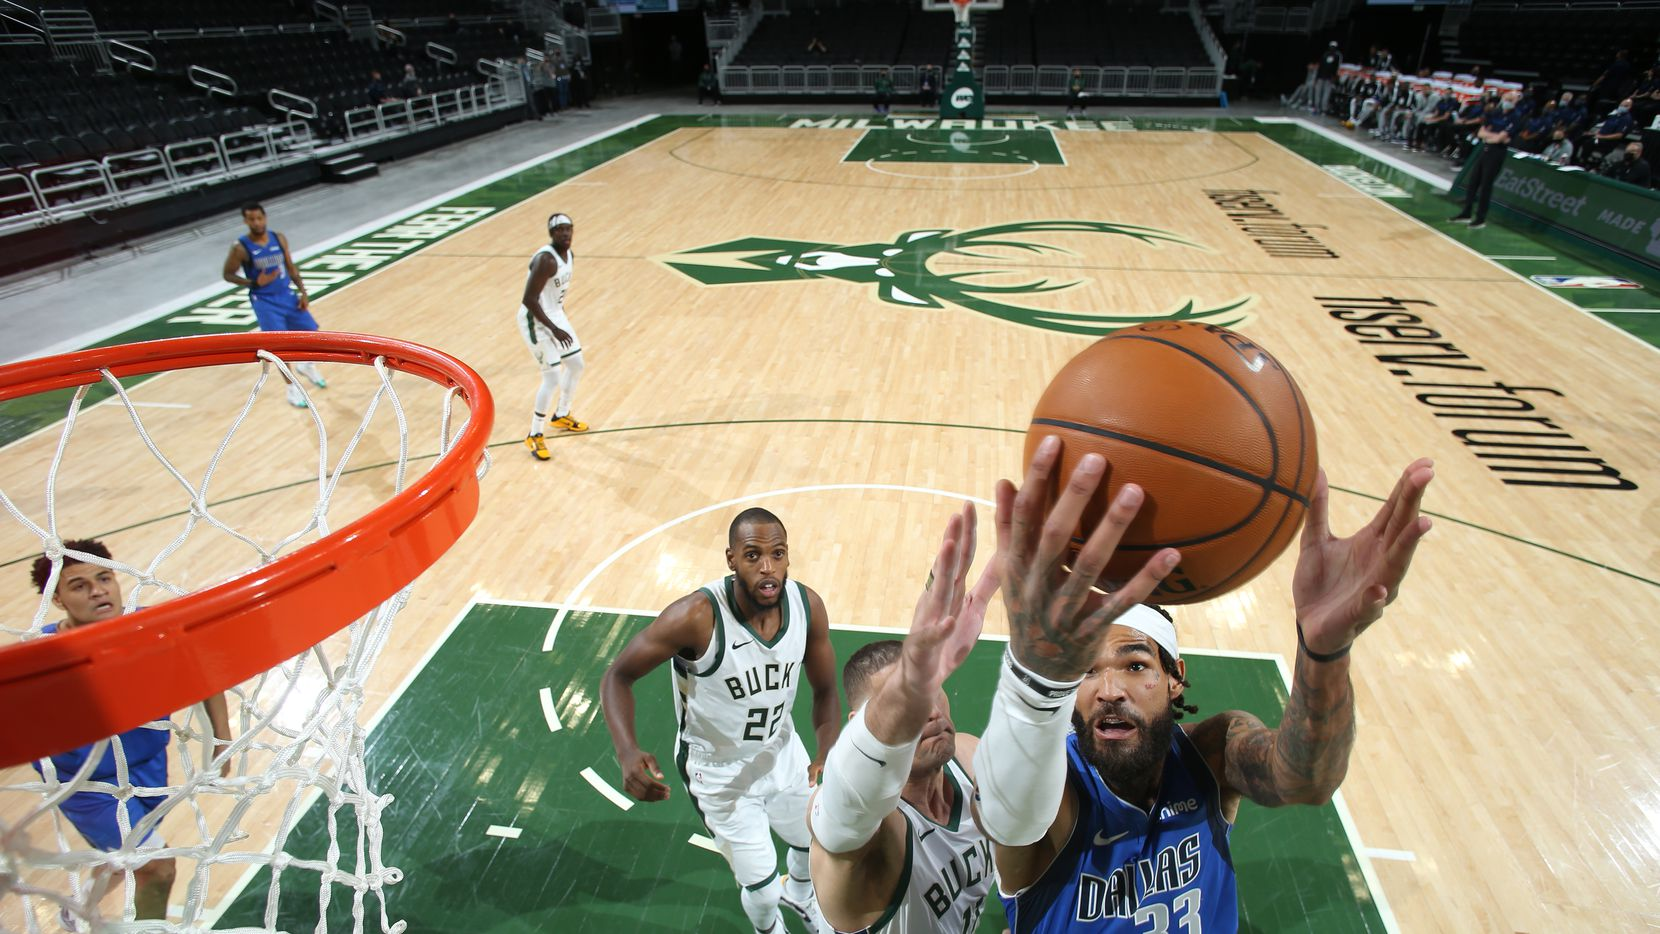 MILWAUKEE, WI - December 12: Willie Cauley-Stein #33 of the Dallas Mavericks shoots the ball against the Milwaukee Bucks during a preseason game on December 12, 2020 at the Fiserv Forum Center in Milwaukee, Wisconsin. NOTE TO USER: User expressly acknowledges and agrees that, by downloading and or using this Photograph, user is consenting to the terms and conditions of the Getty Images License Agreement. Mandatory Copyright Notice: Copyright 2020 NBAE